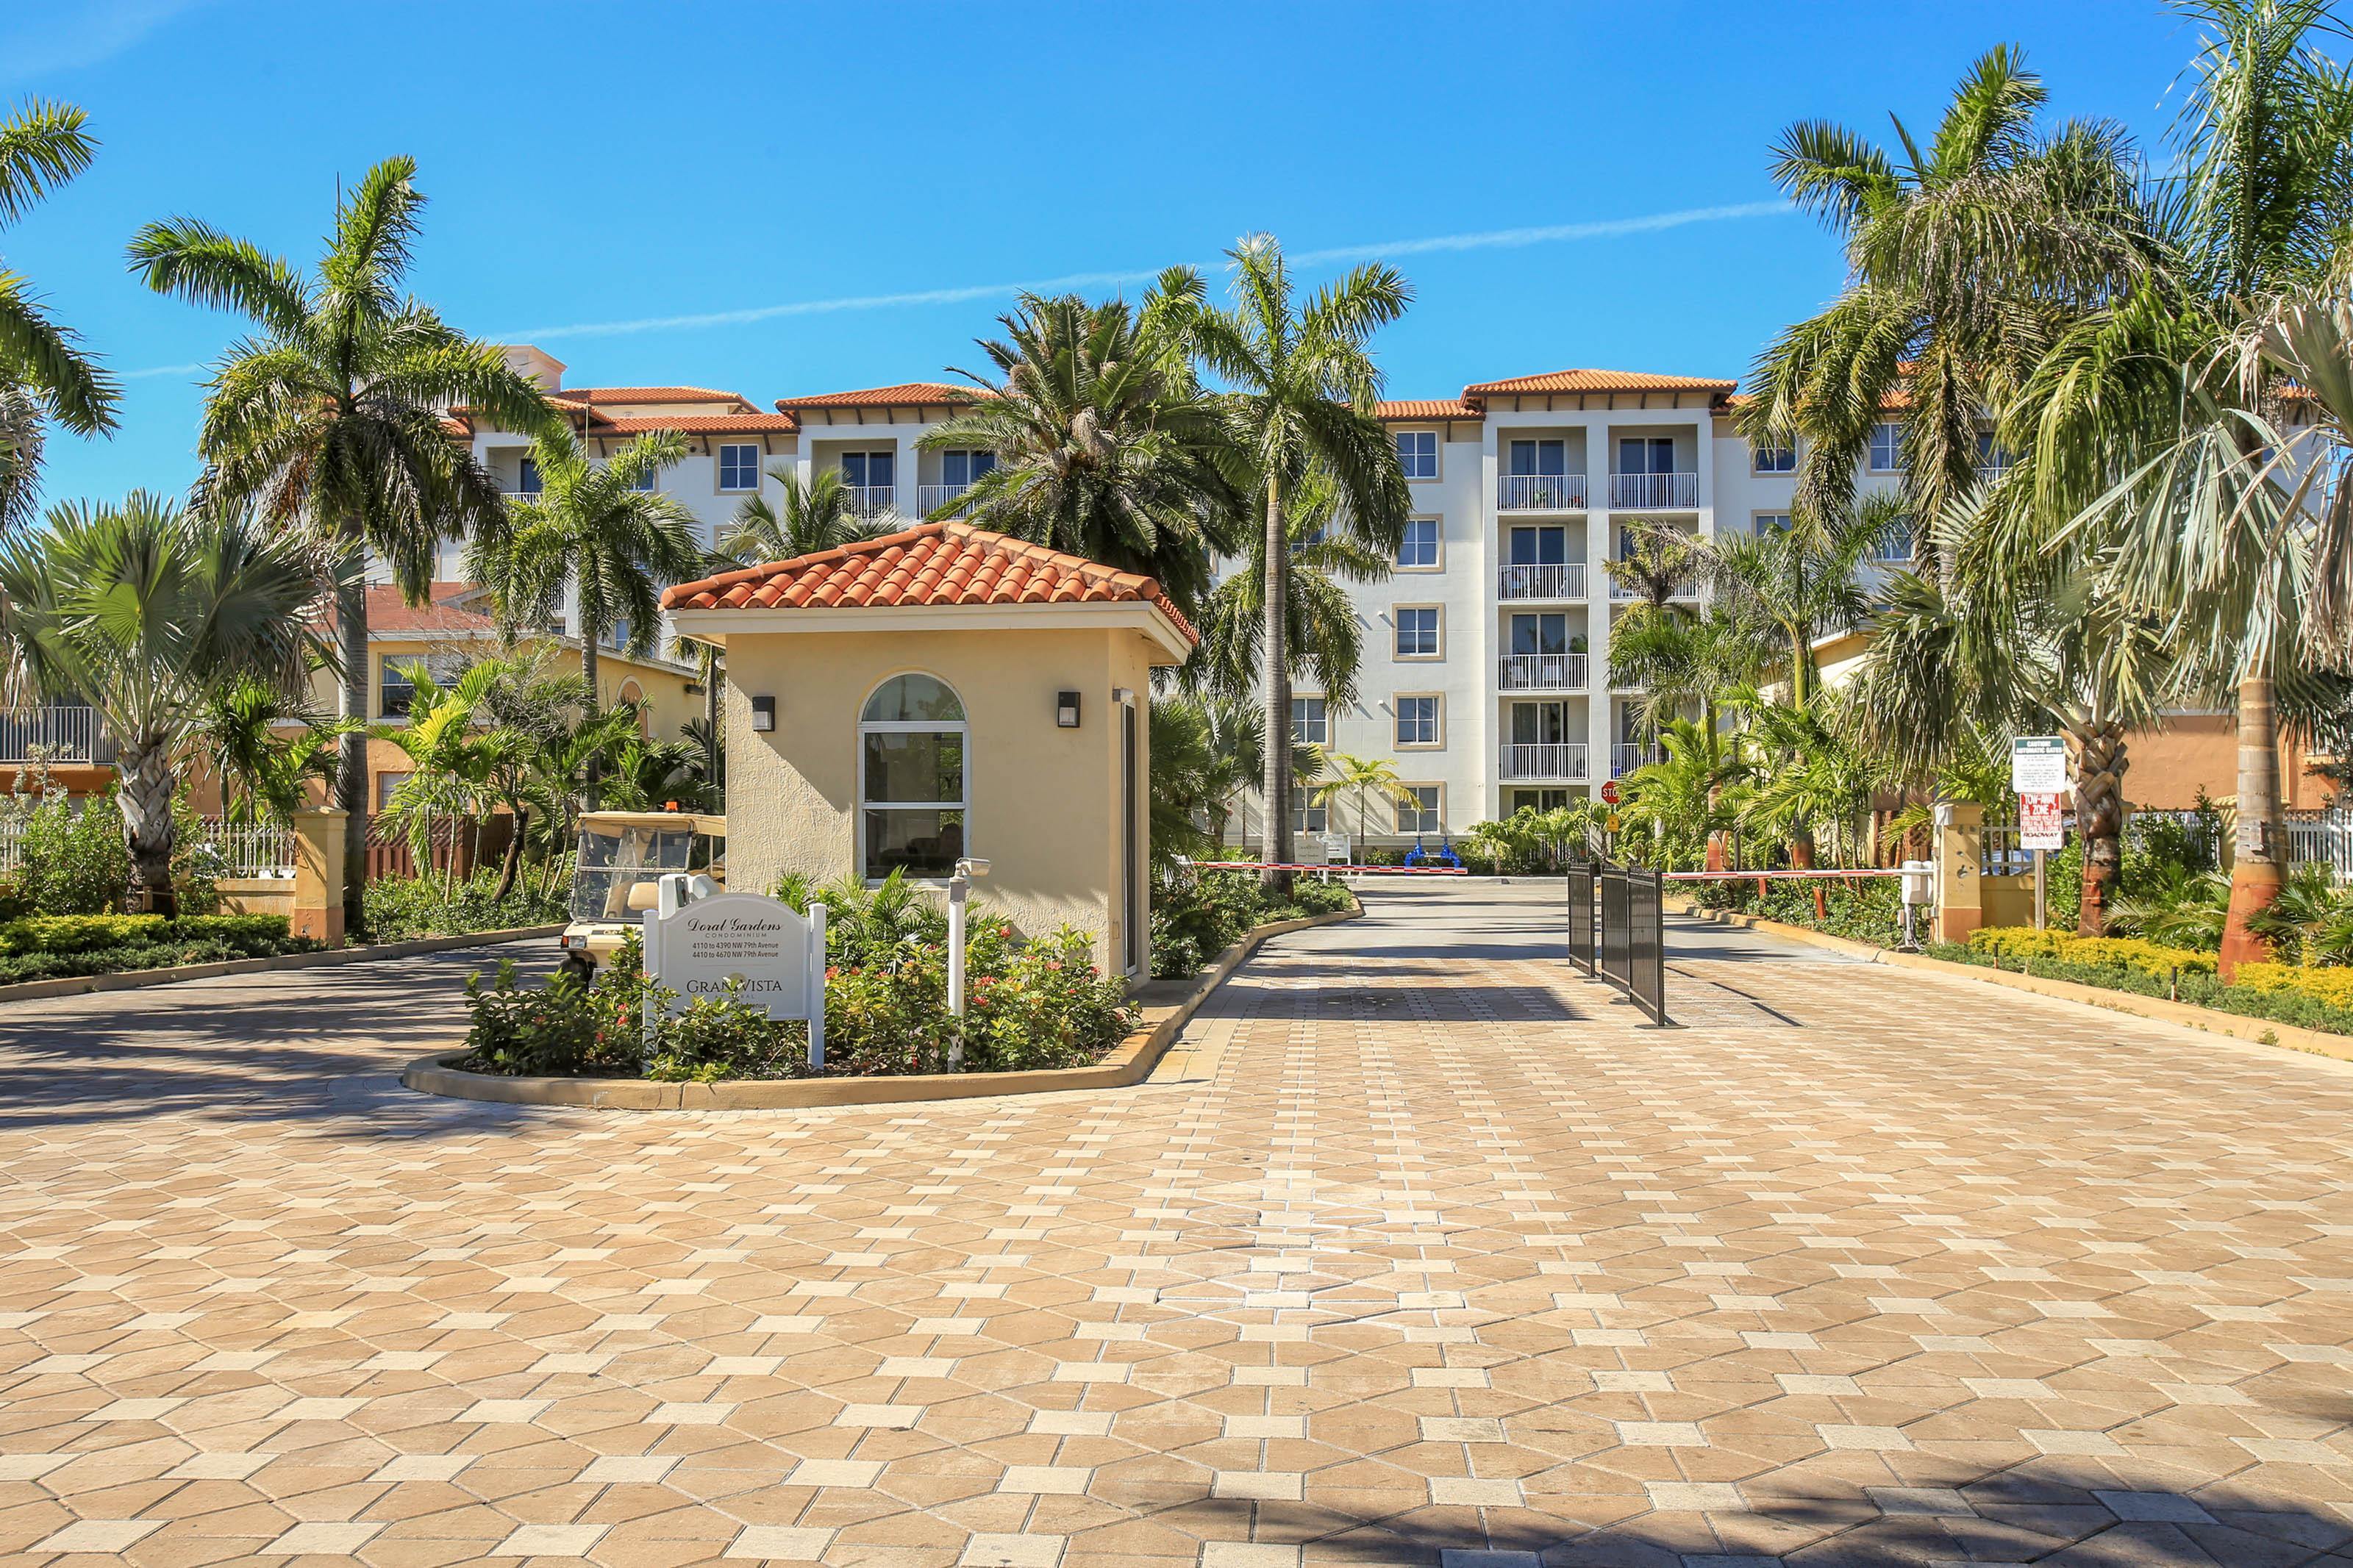 20 best apartments in opa locka fl with pictures